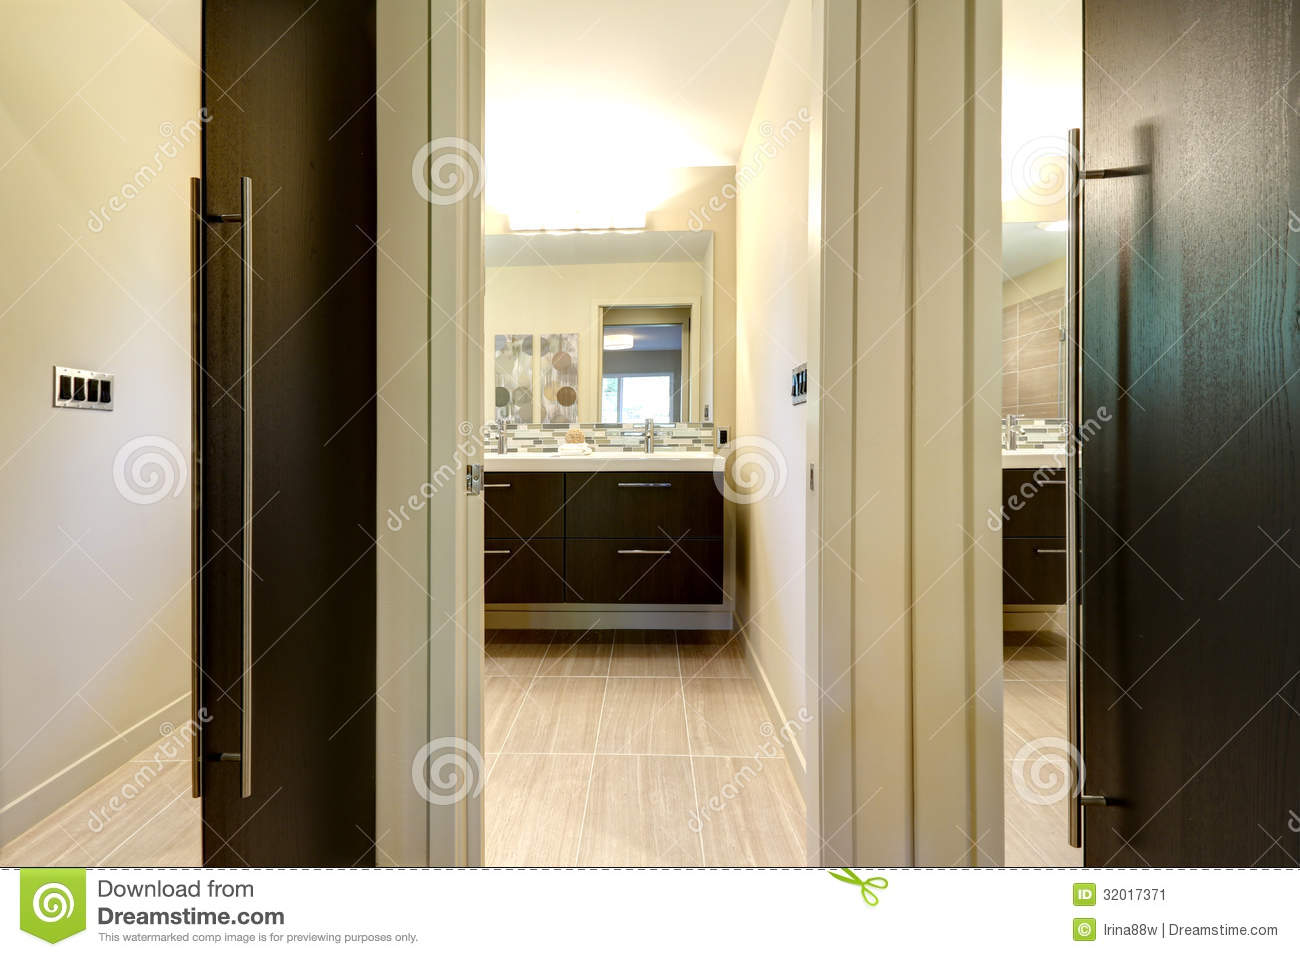 Modern Bathroom With Closet Doors And Hallway With Mirrors. Stock ...